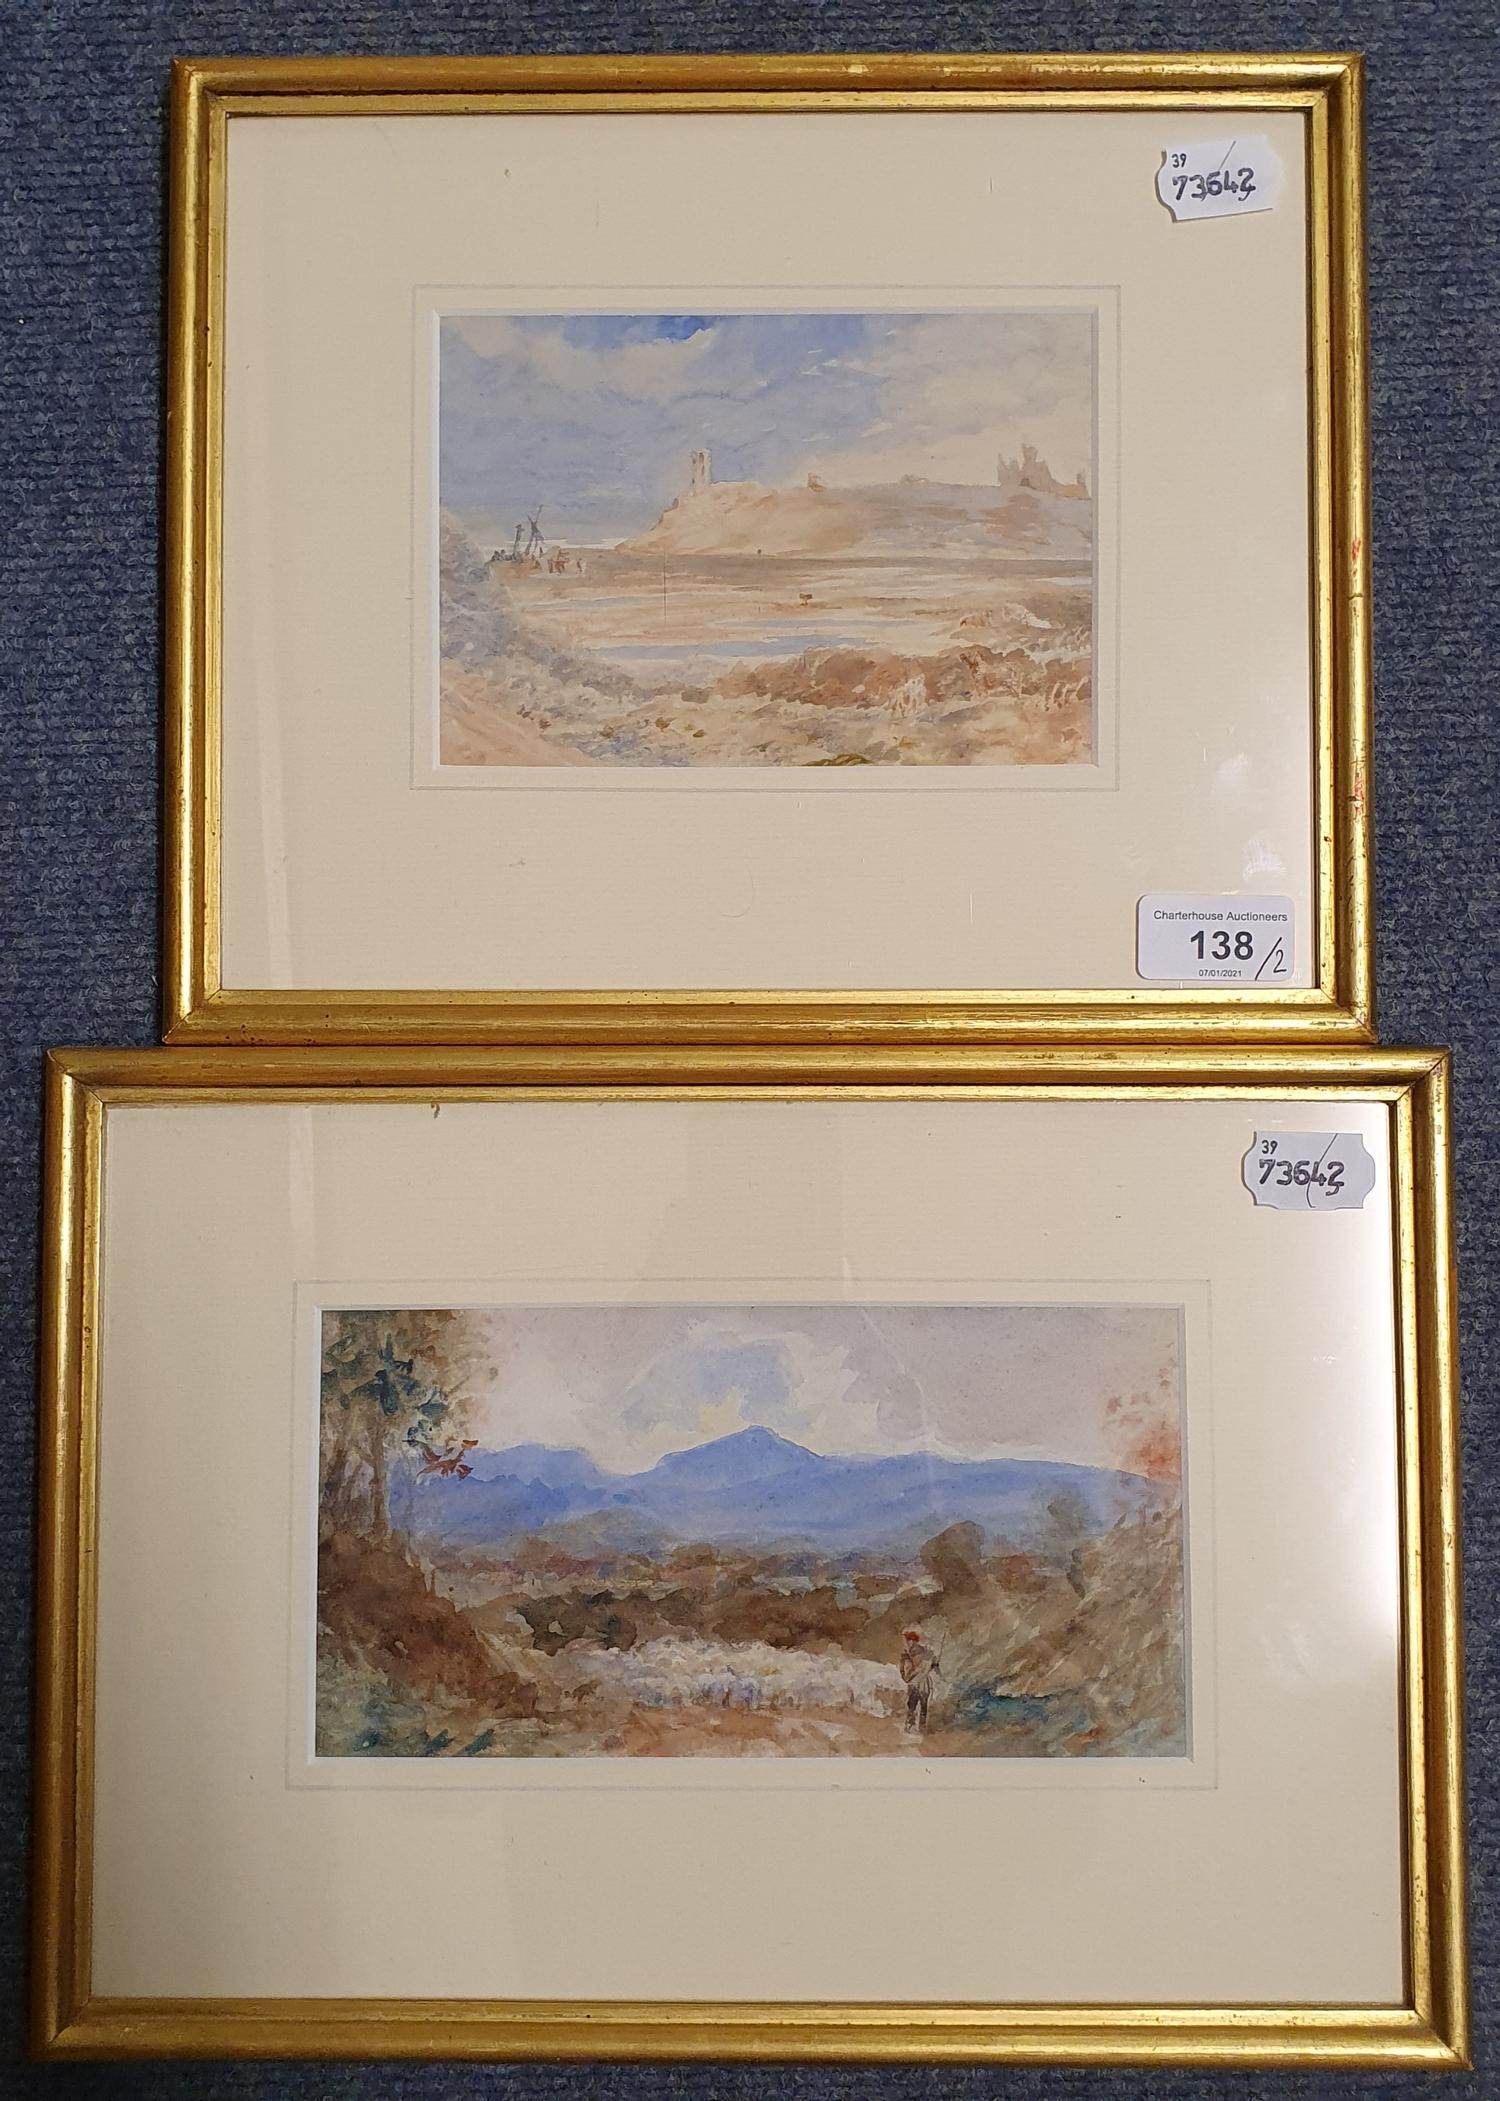 English school, 19th century, landscape with figure, watercolour, 11x 22 cm and a beach scene, - Image 3 of 4